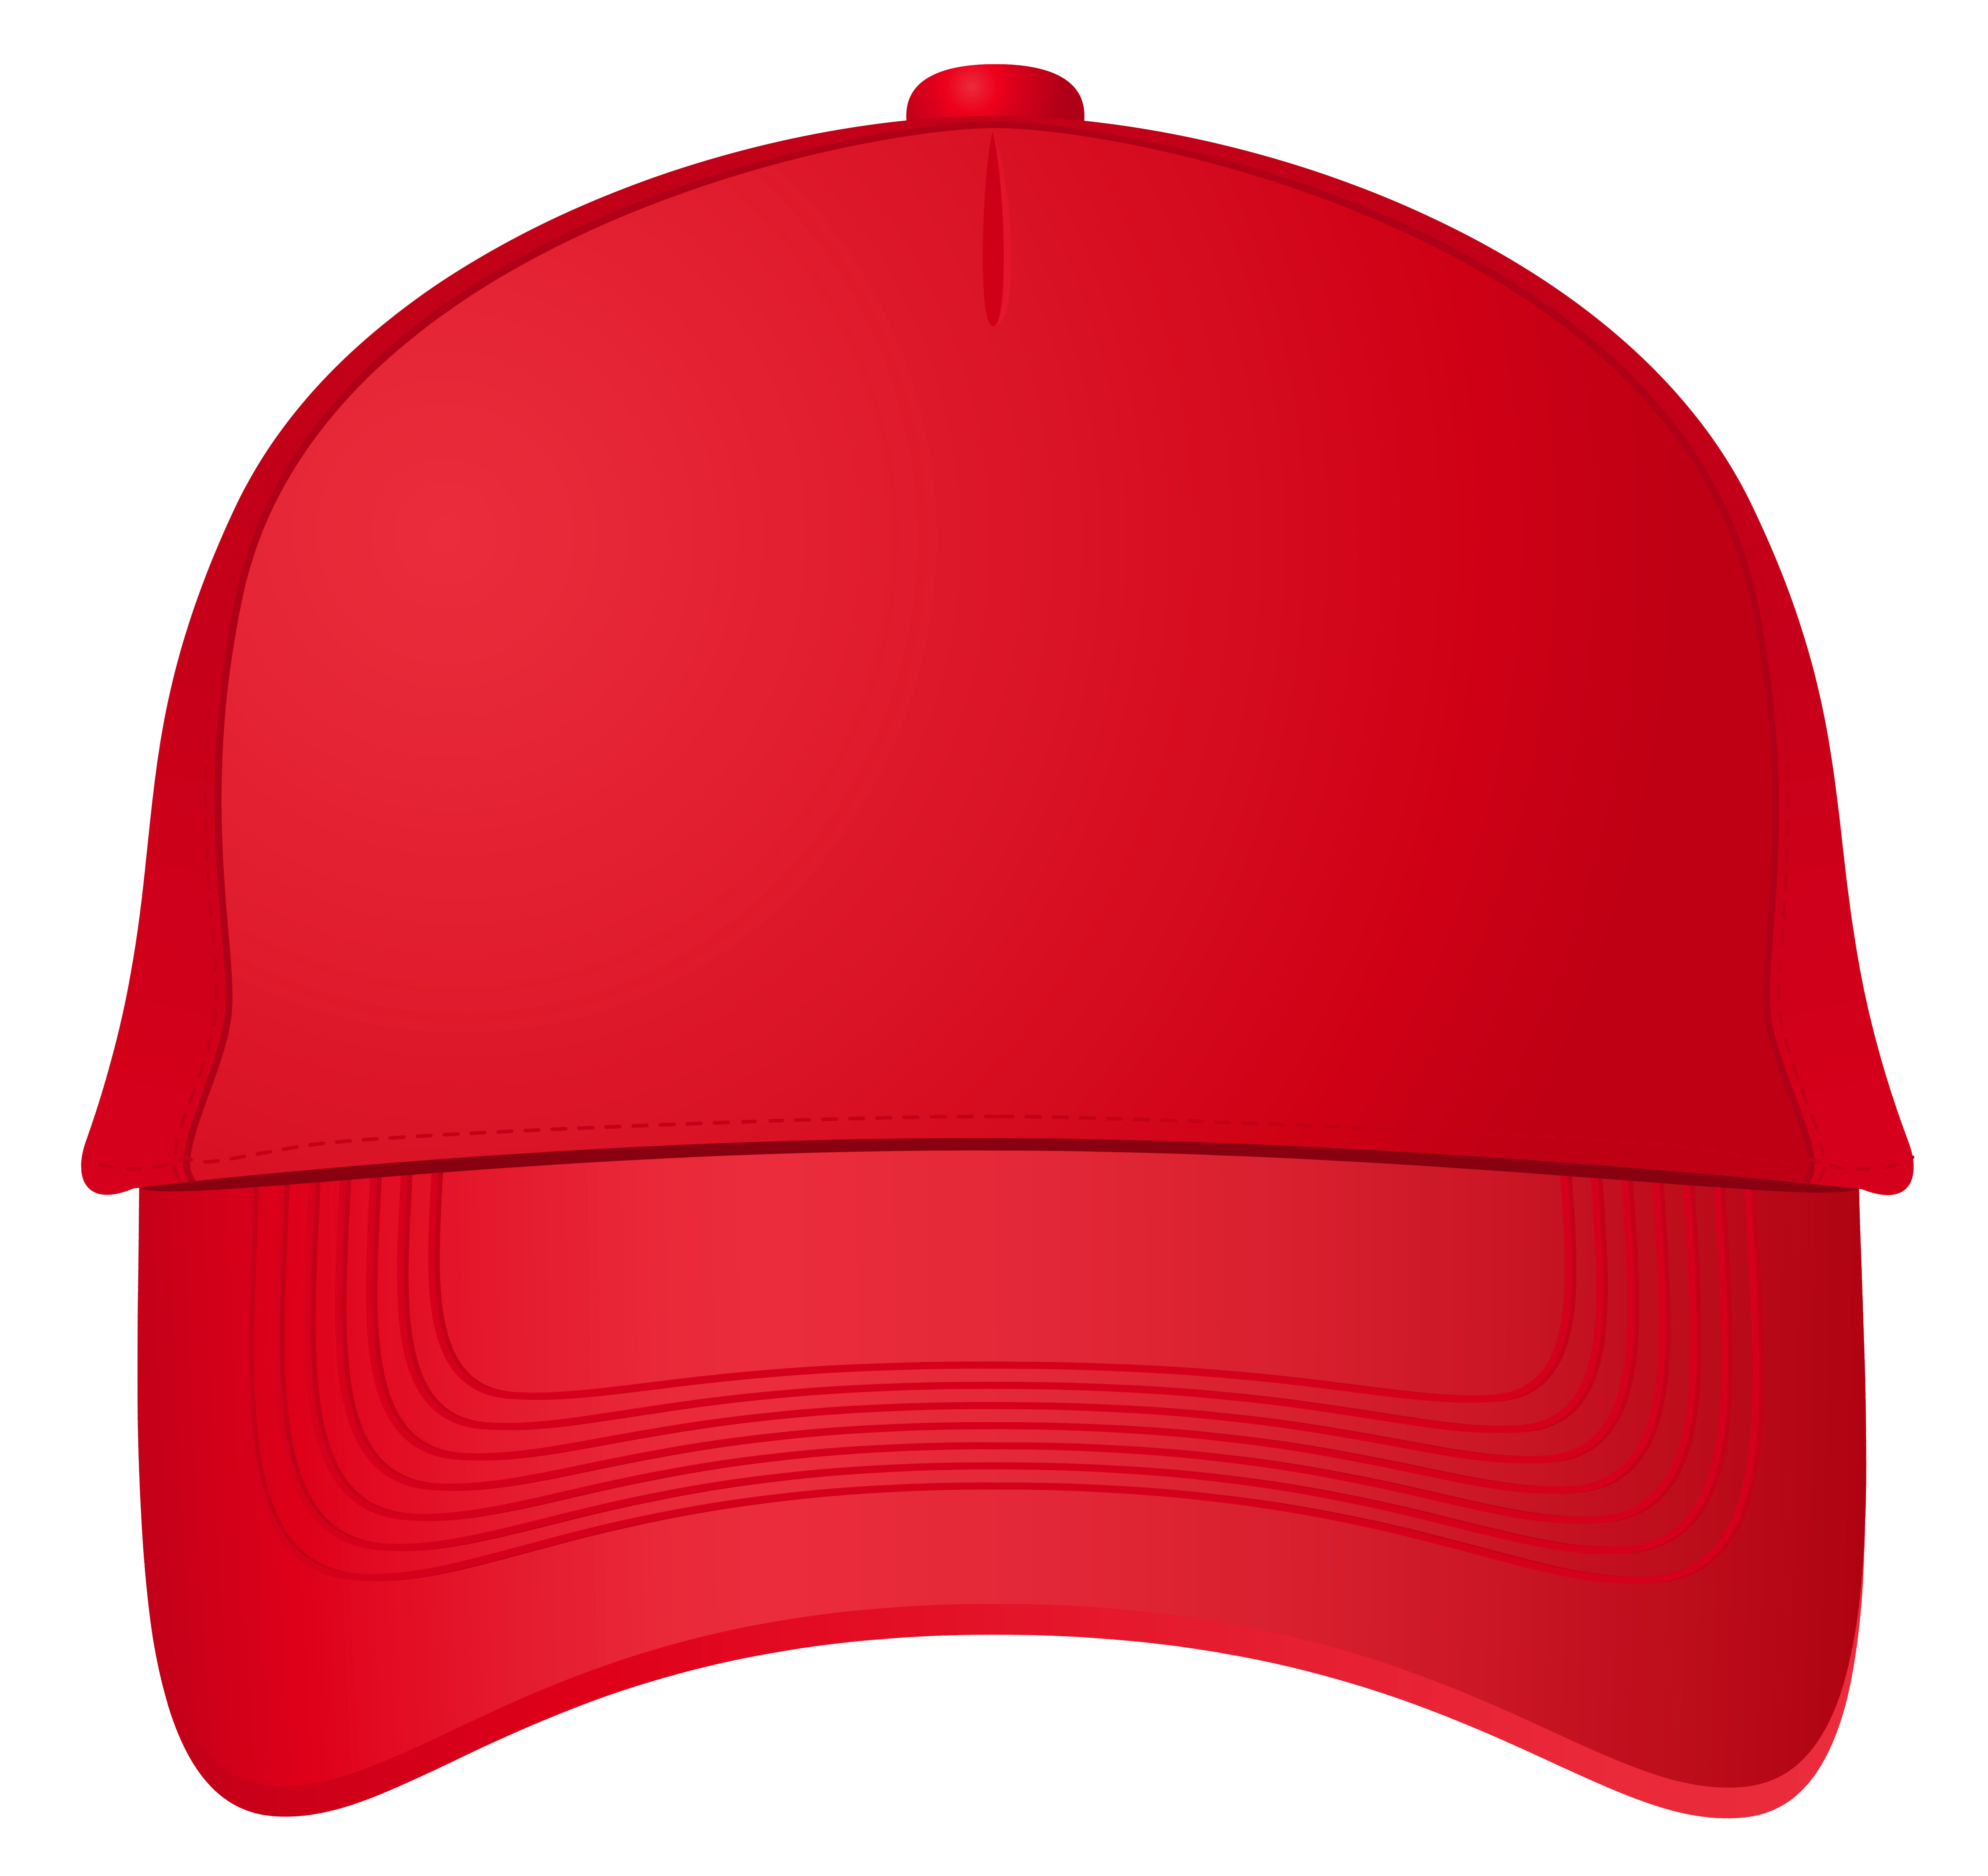 Red Cap Clipart Clipground